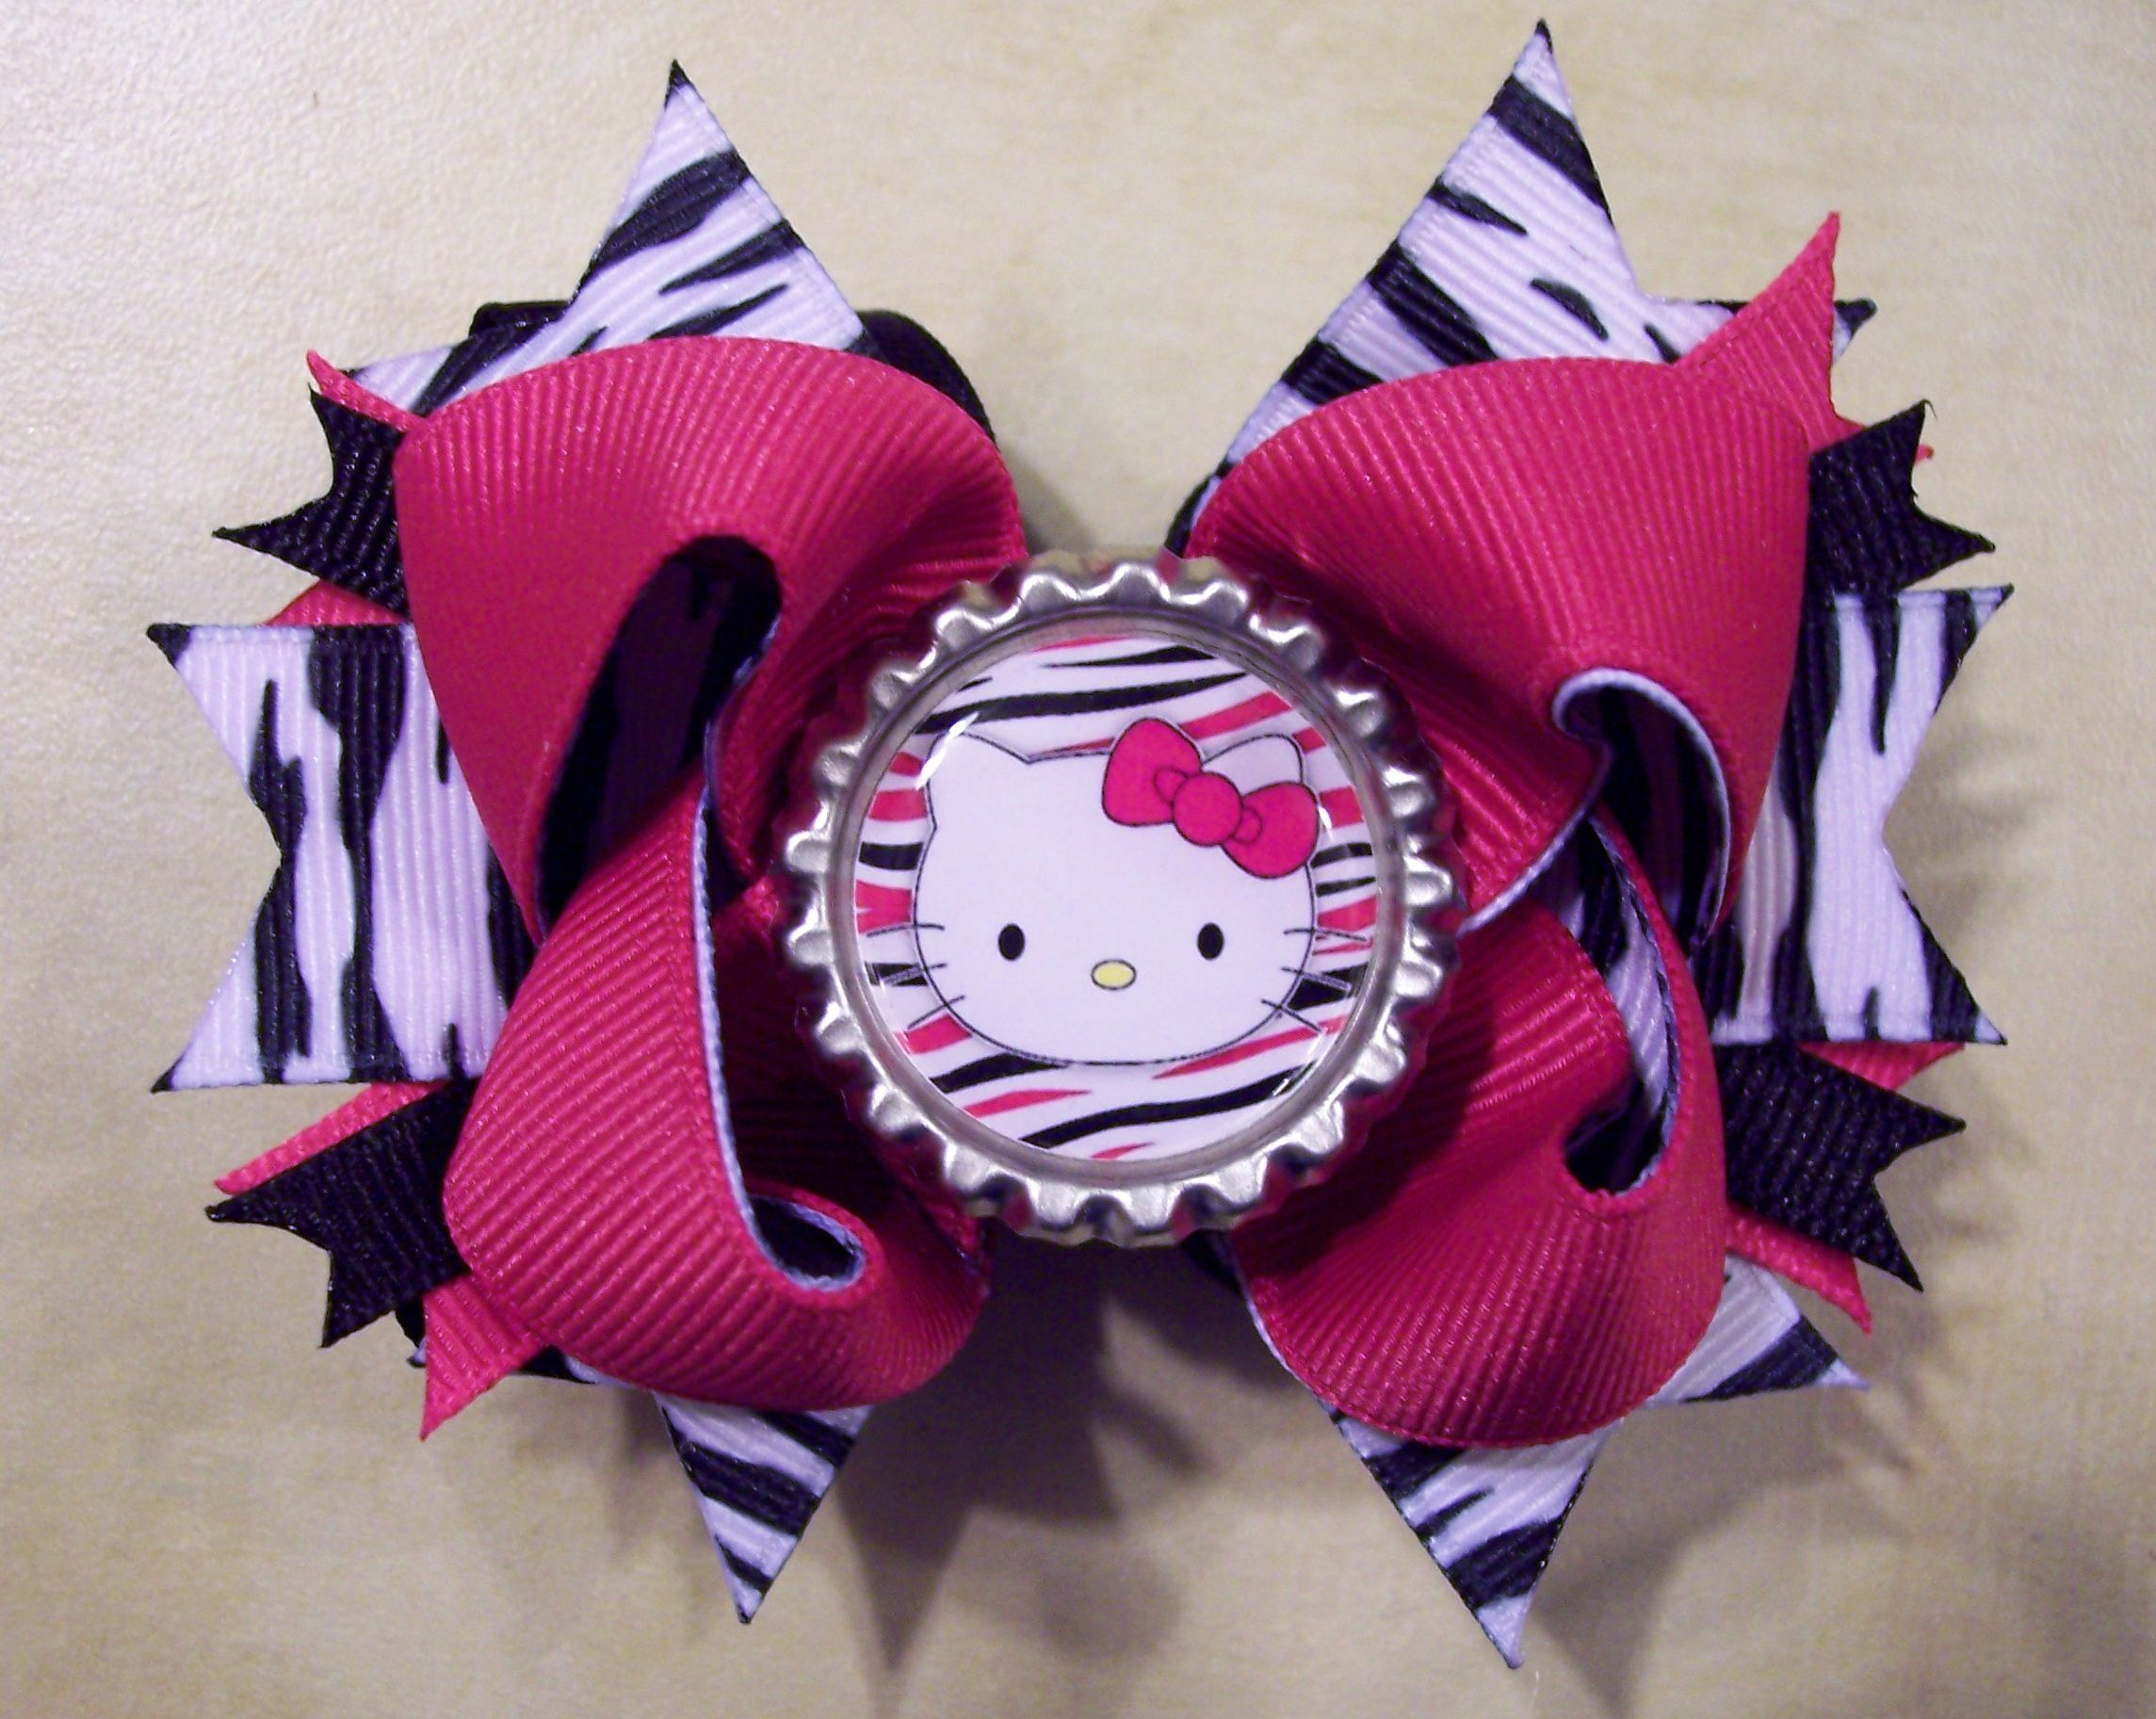 Bows for hair hello kitty zebra boutique hair bow clippies by